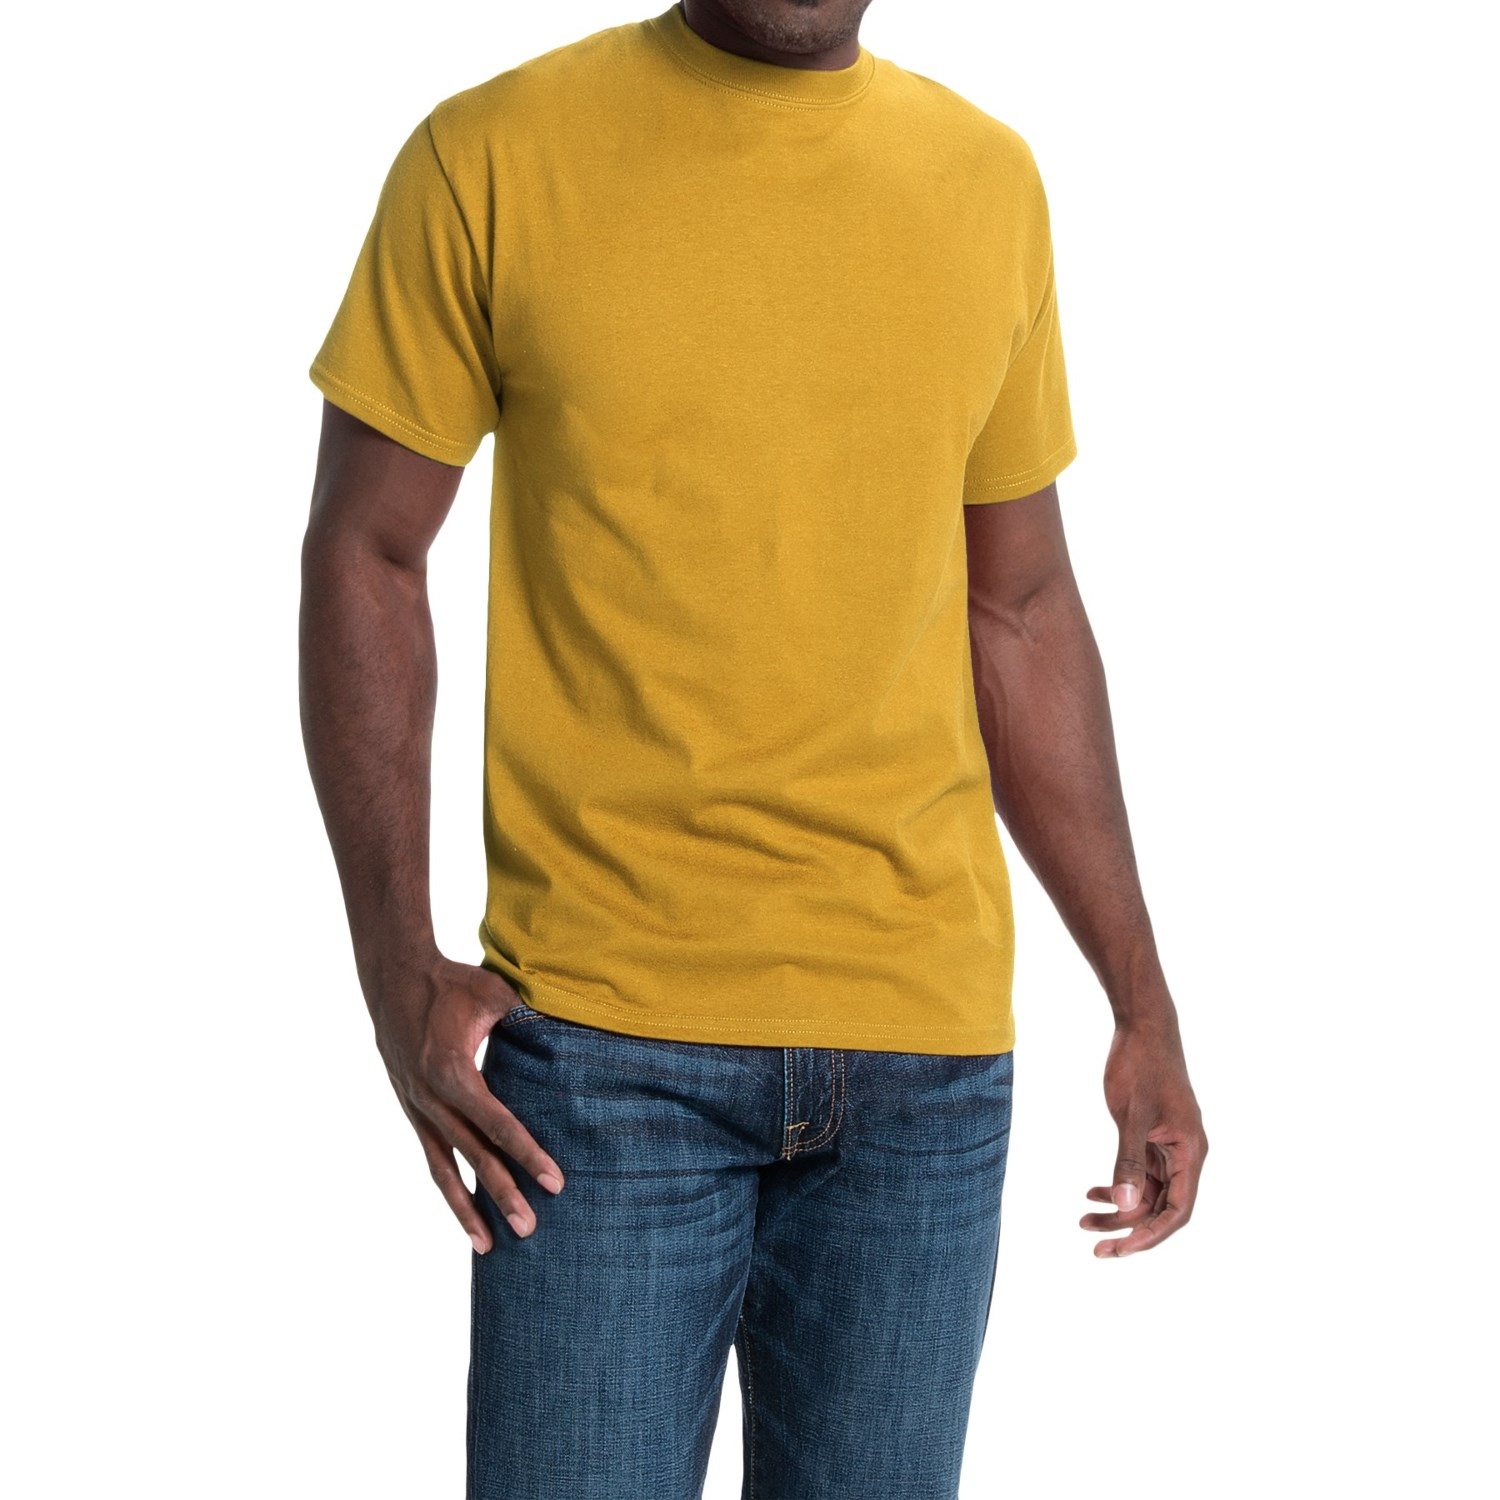 Hanes Beefy T T Shirt For Men And Women Save 68